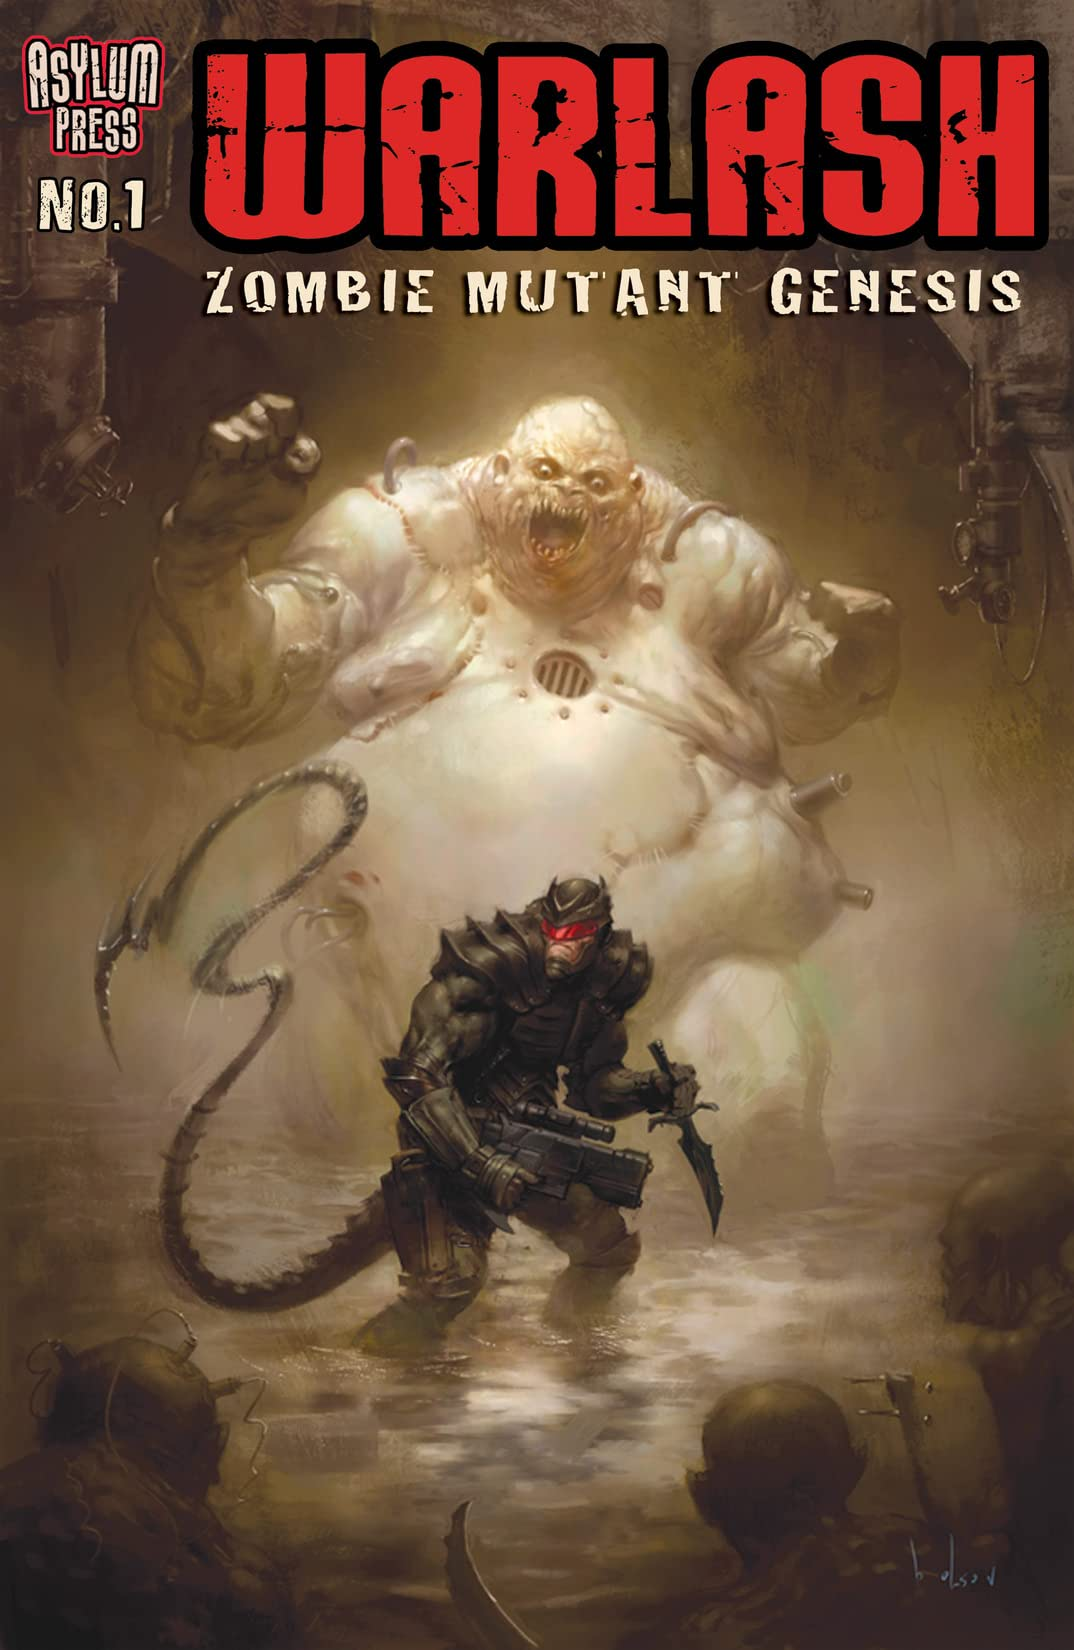 Warlash: Zombie Mutant Genesis #1 (of 3)